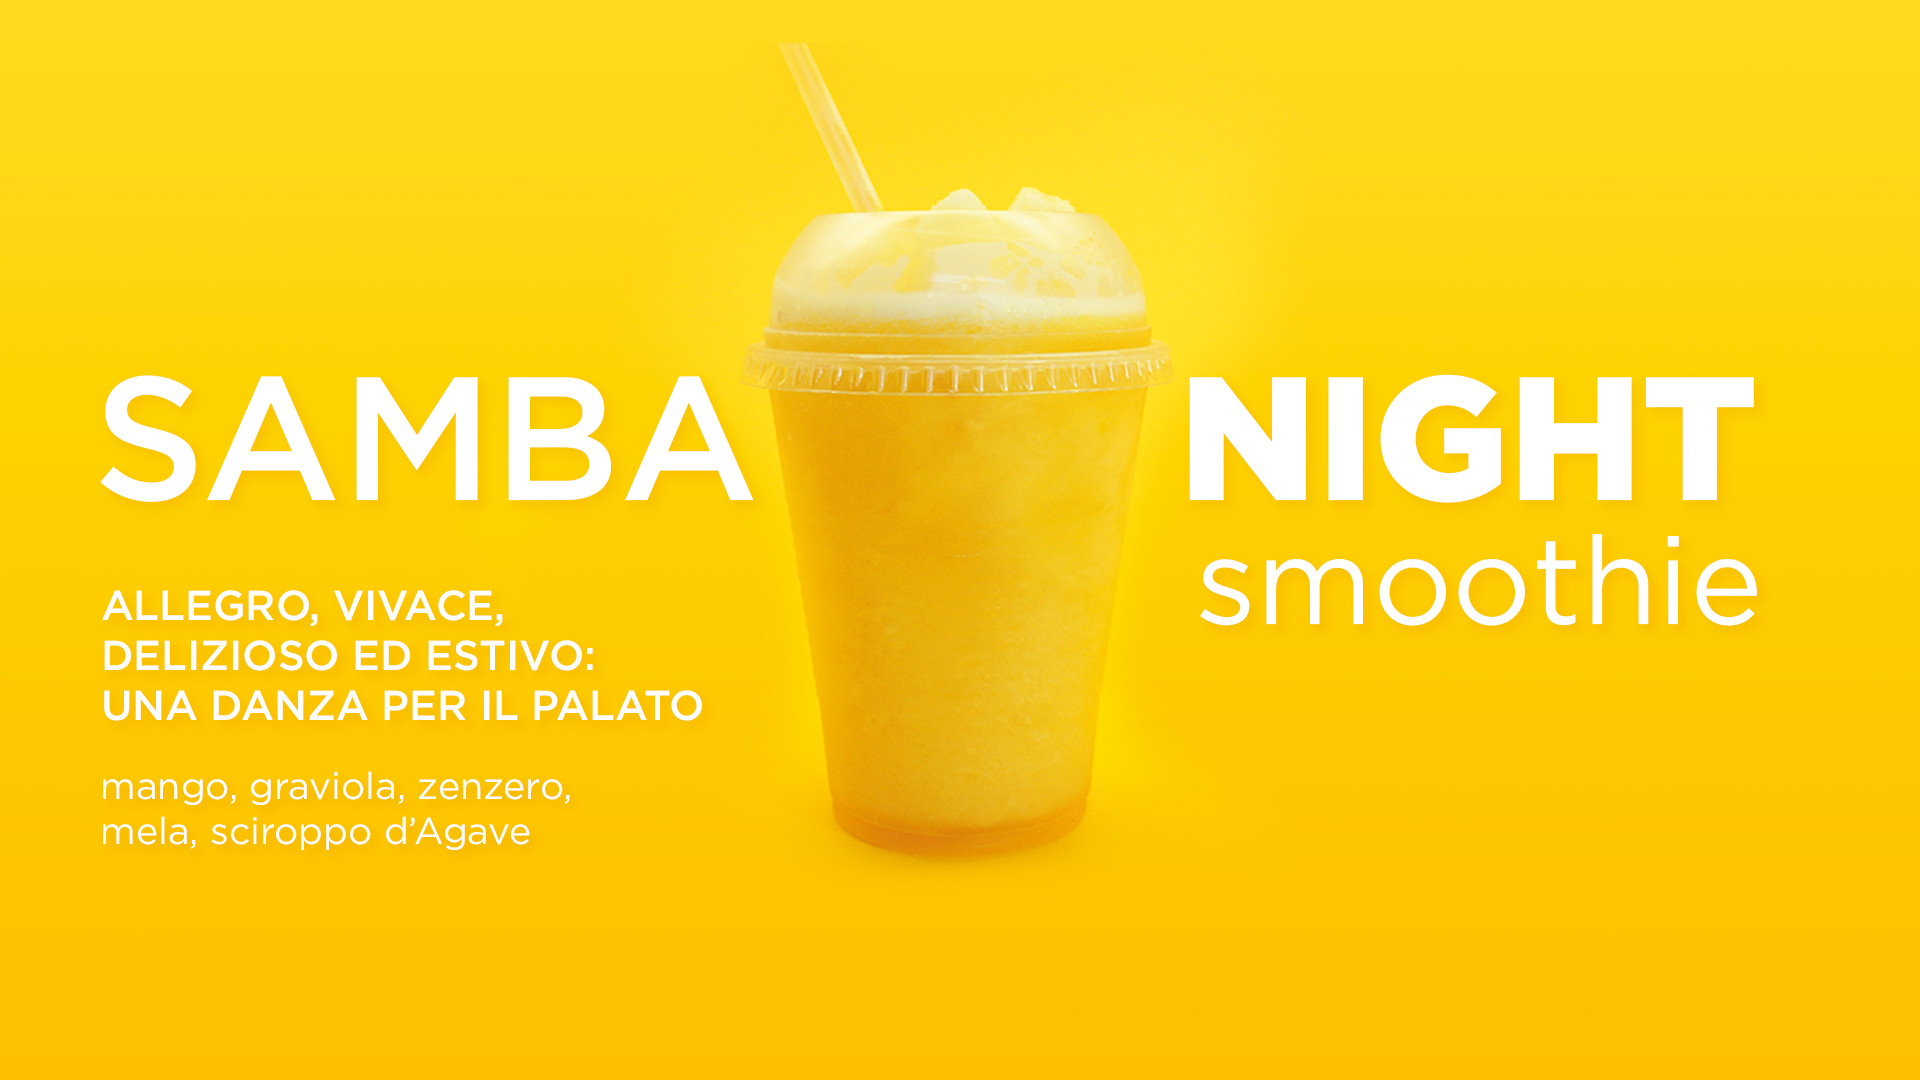 Samba Night smoothie